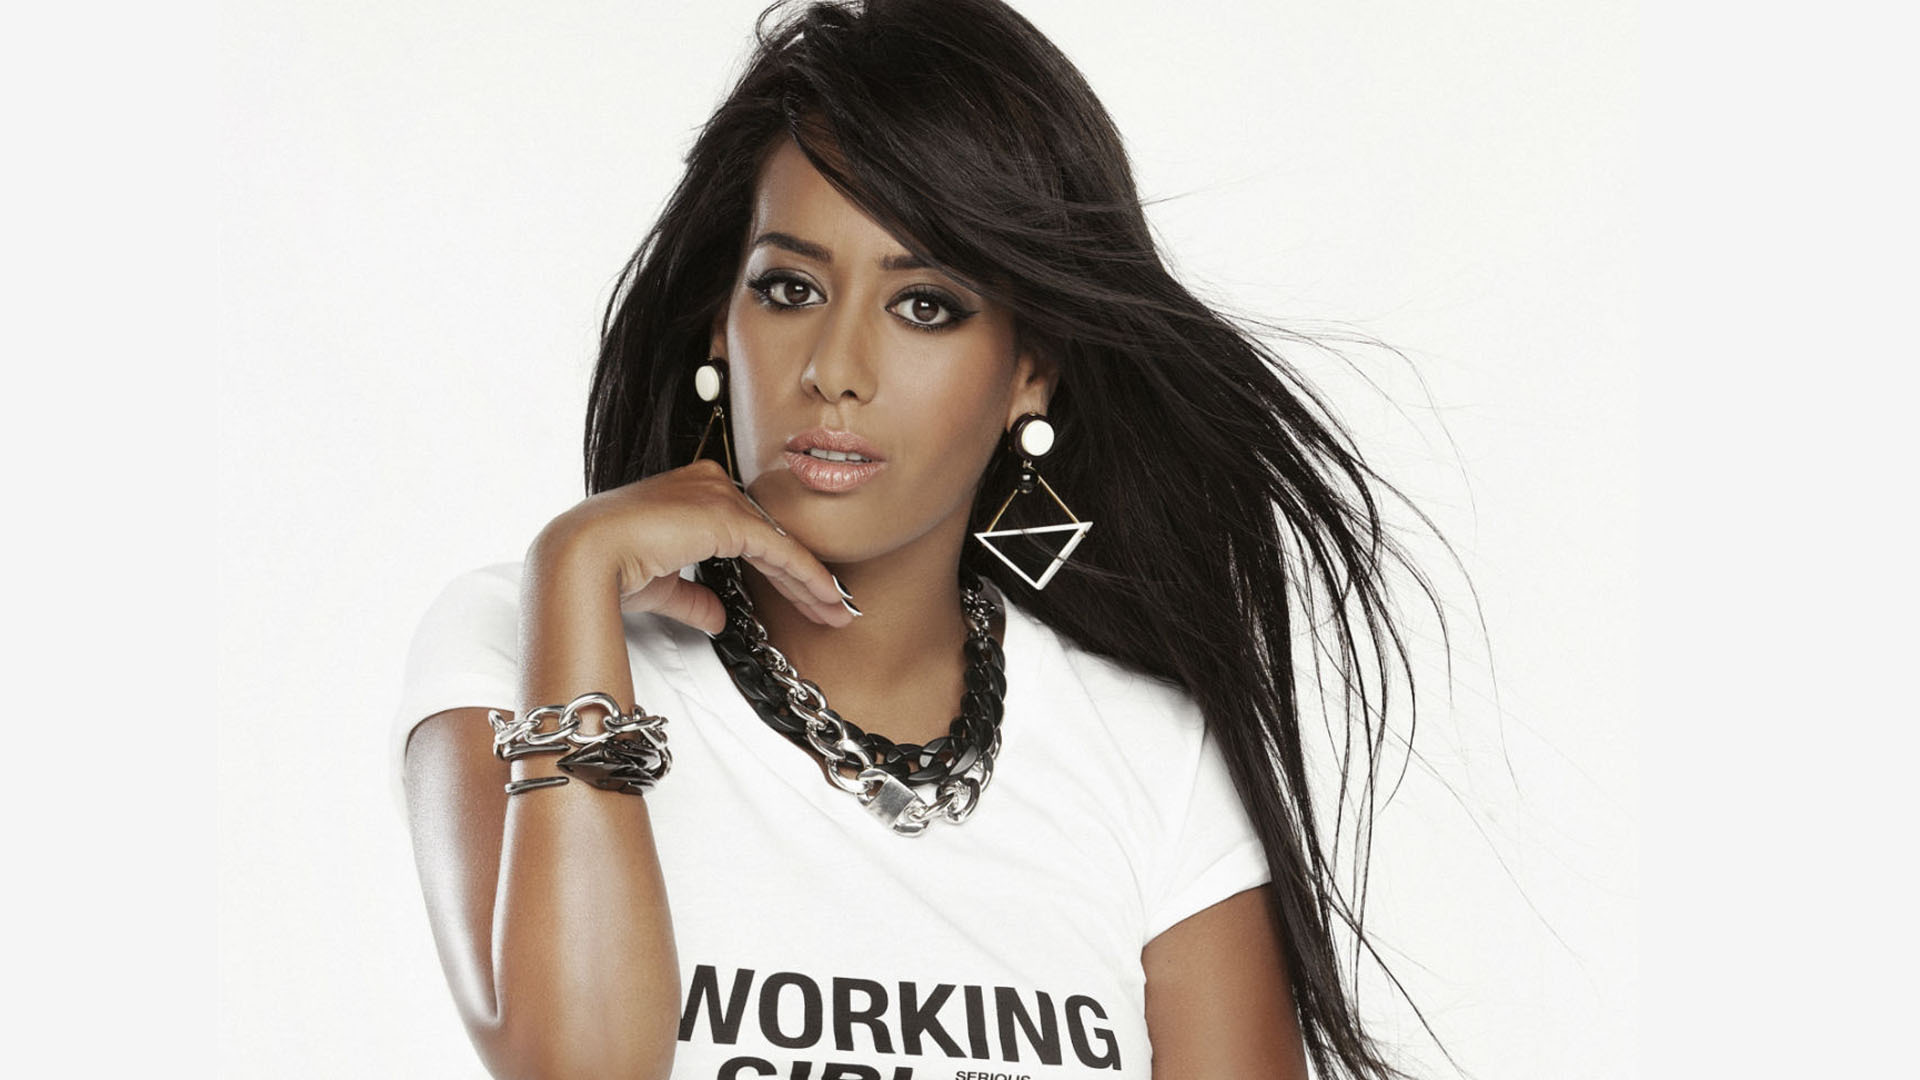 Amel Bent Wallpapers Images Photos Pictures Backgrounds